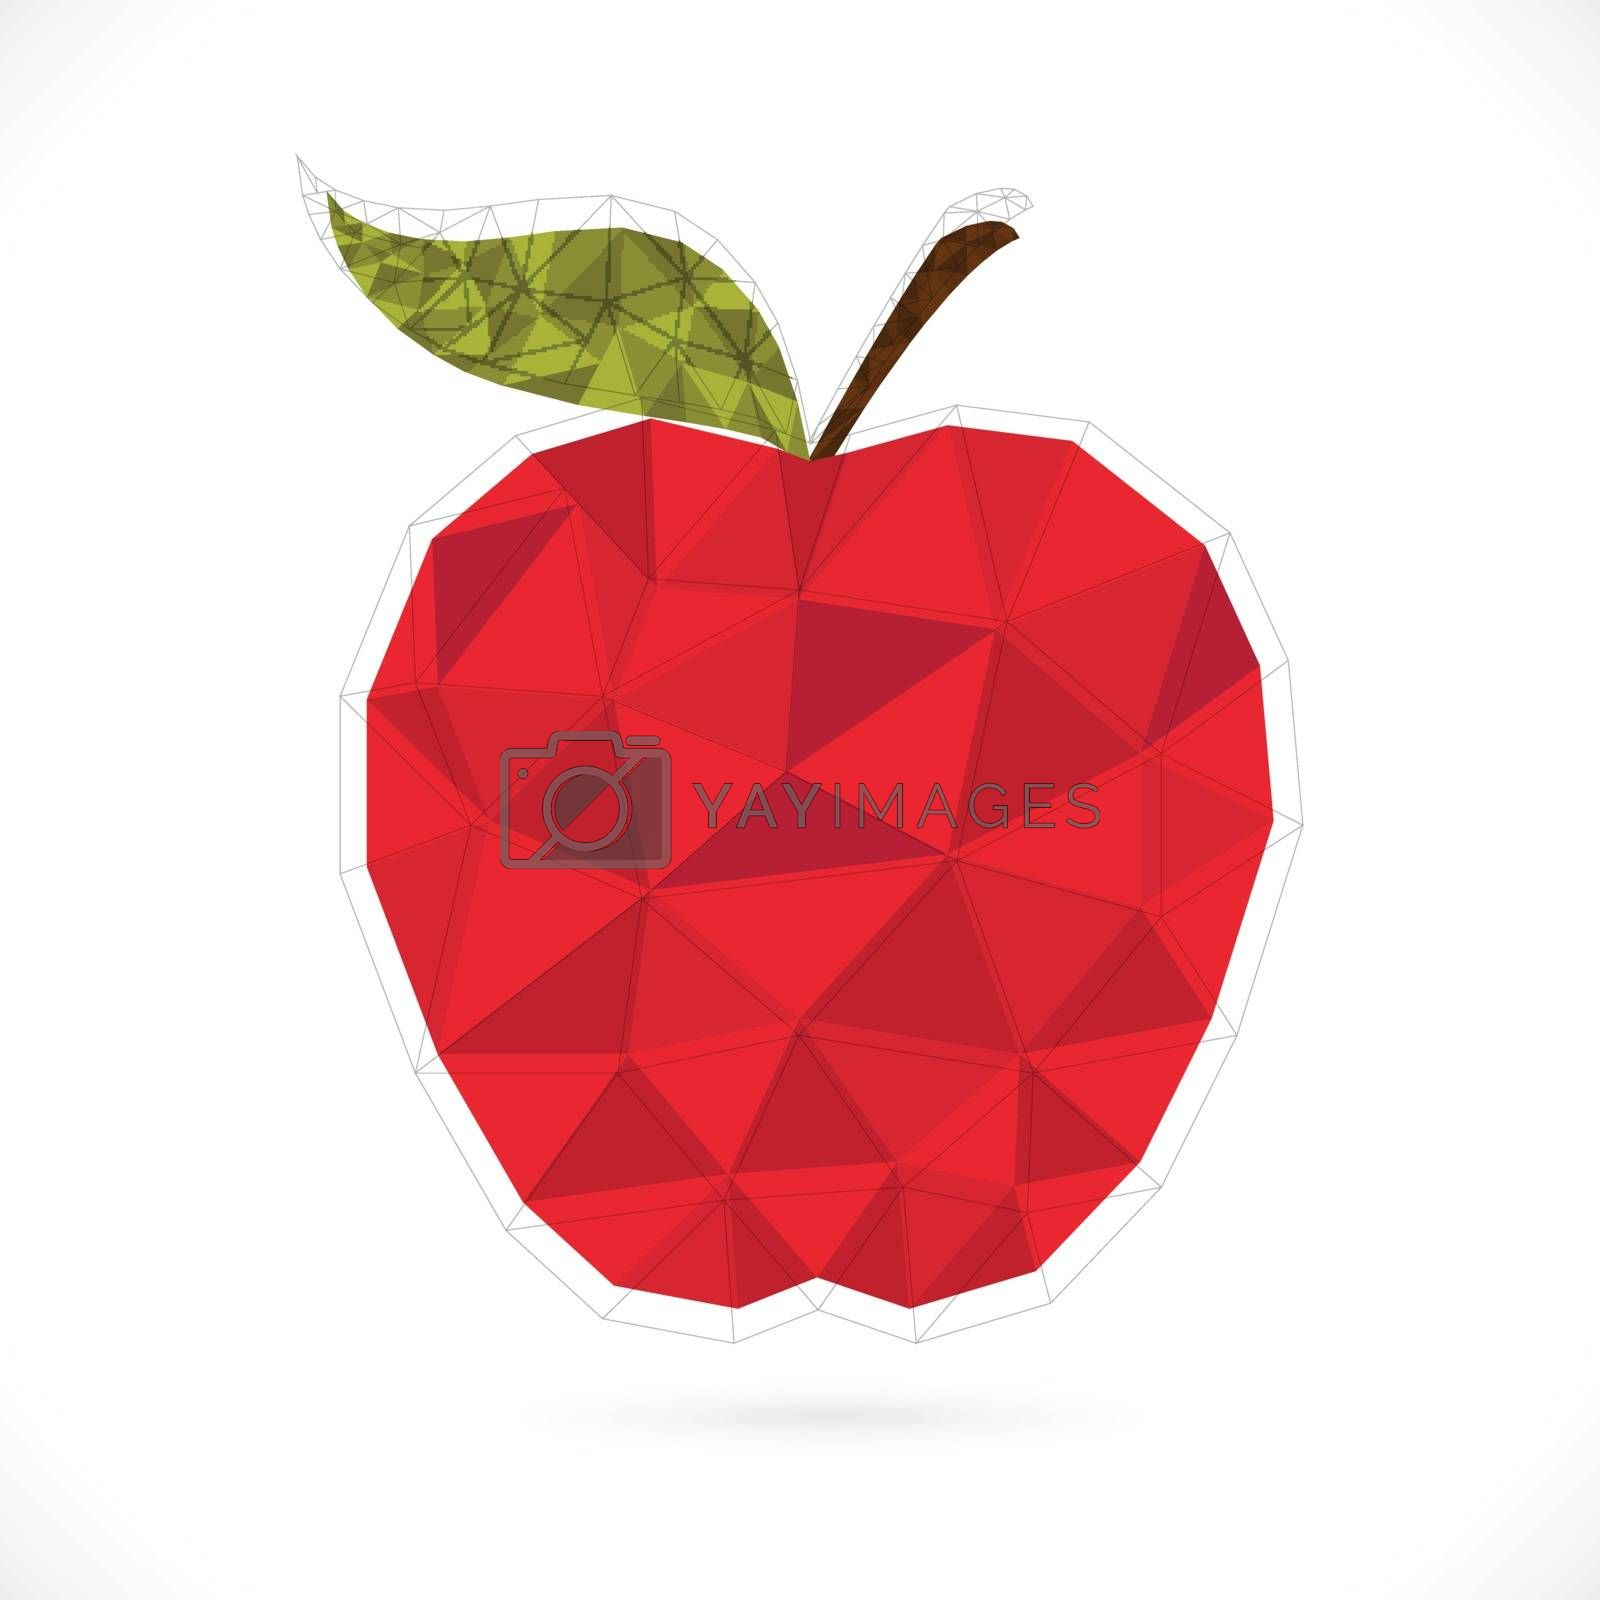 Origami apple design on white background.